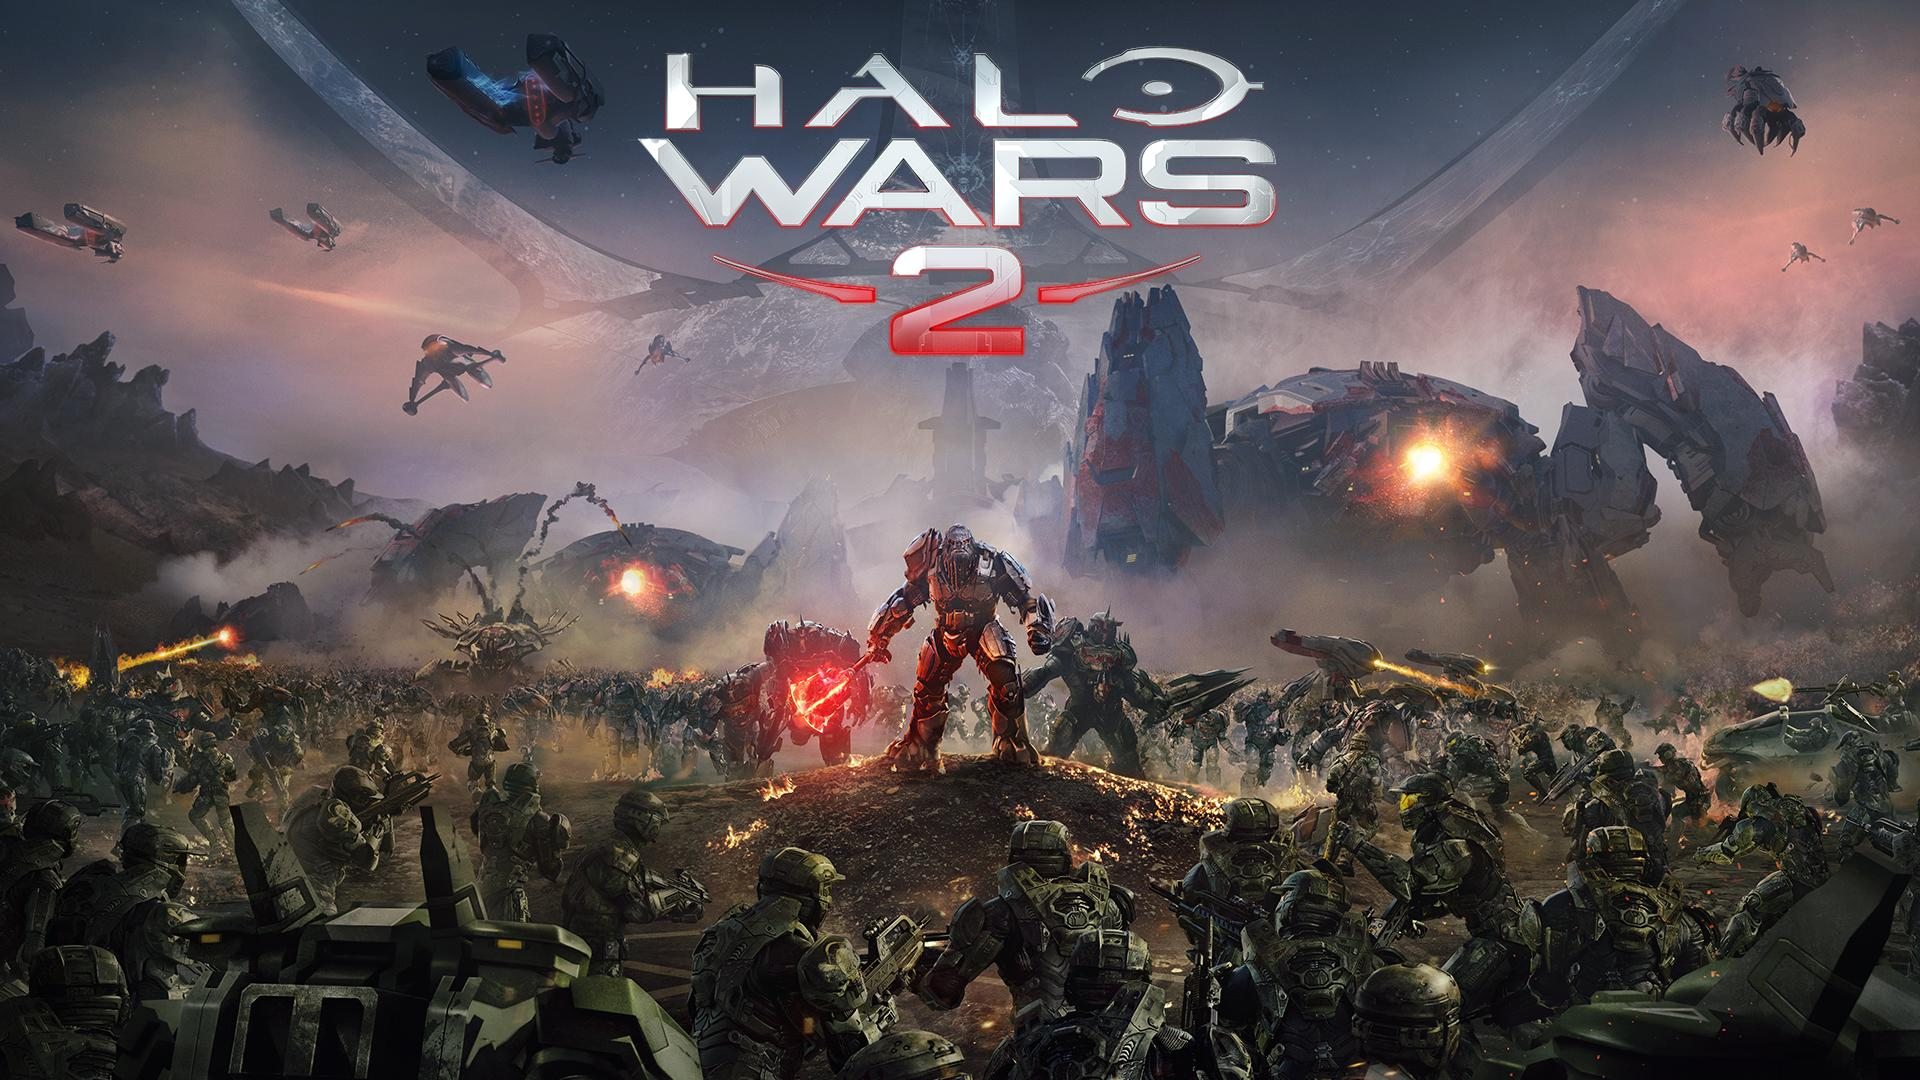 Halo Wars 2 demo now available for Xbox One